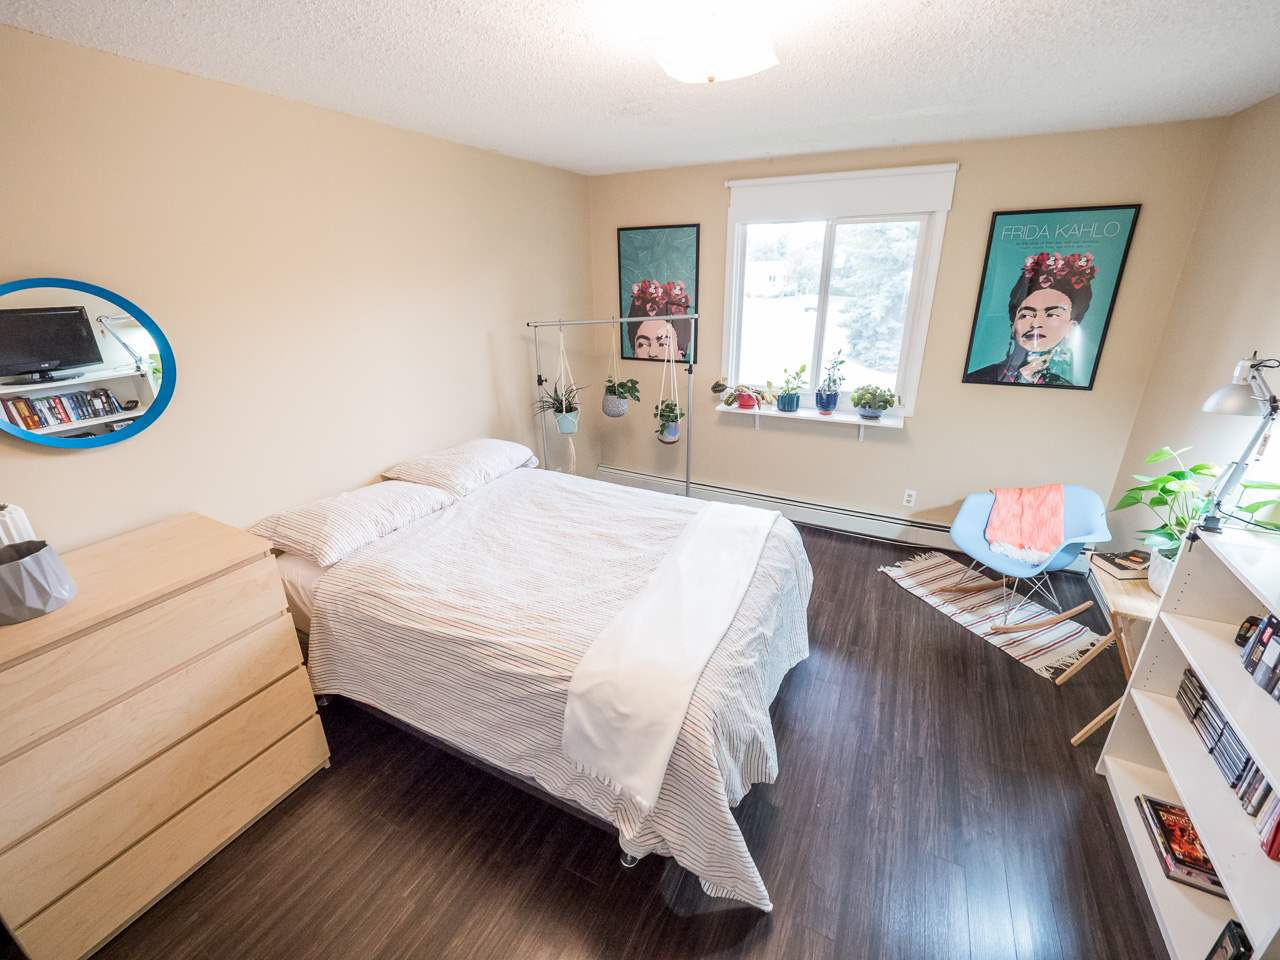 Photo 10: 119 6103 35A Avenue in Edmonton: Zone 29 Townhouse for sale : MLS® # E4082249